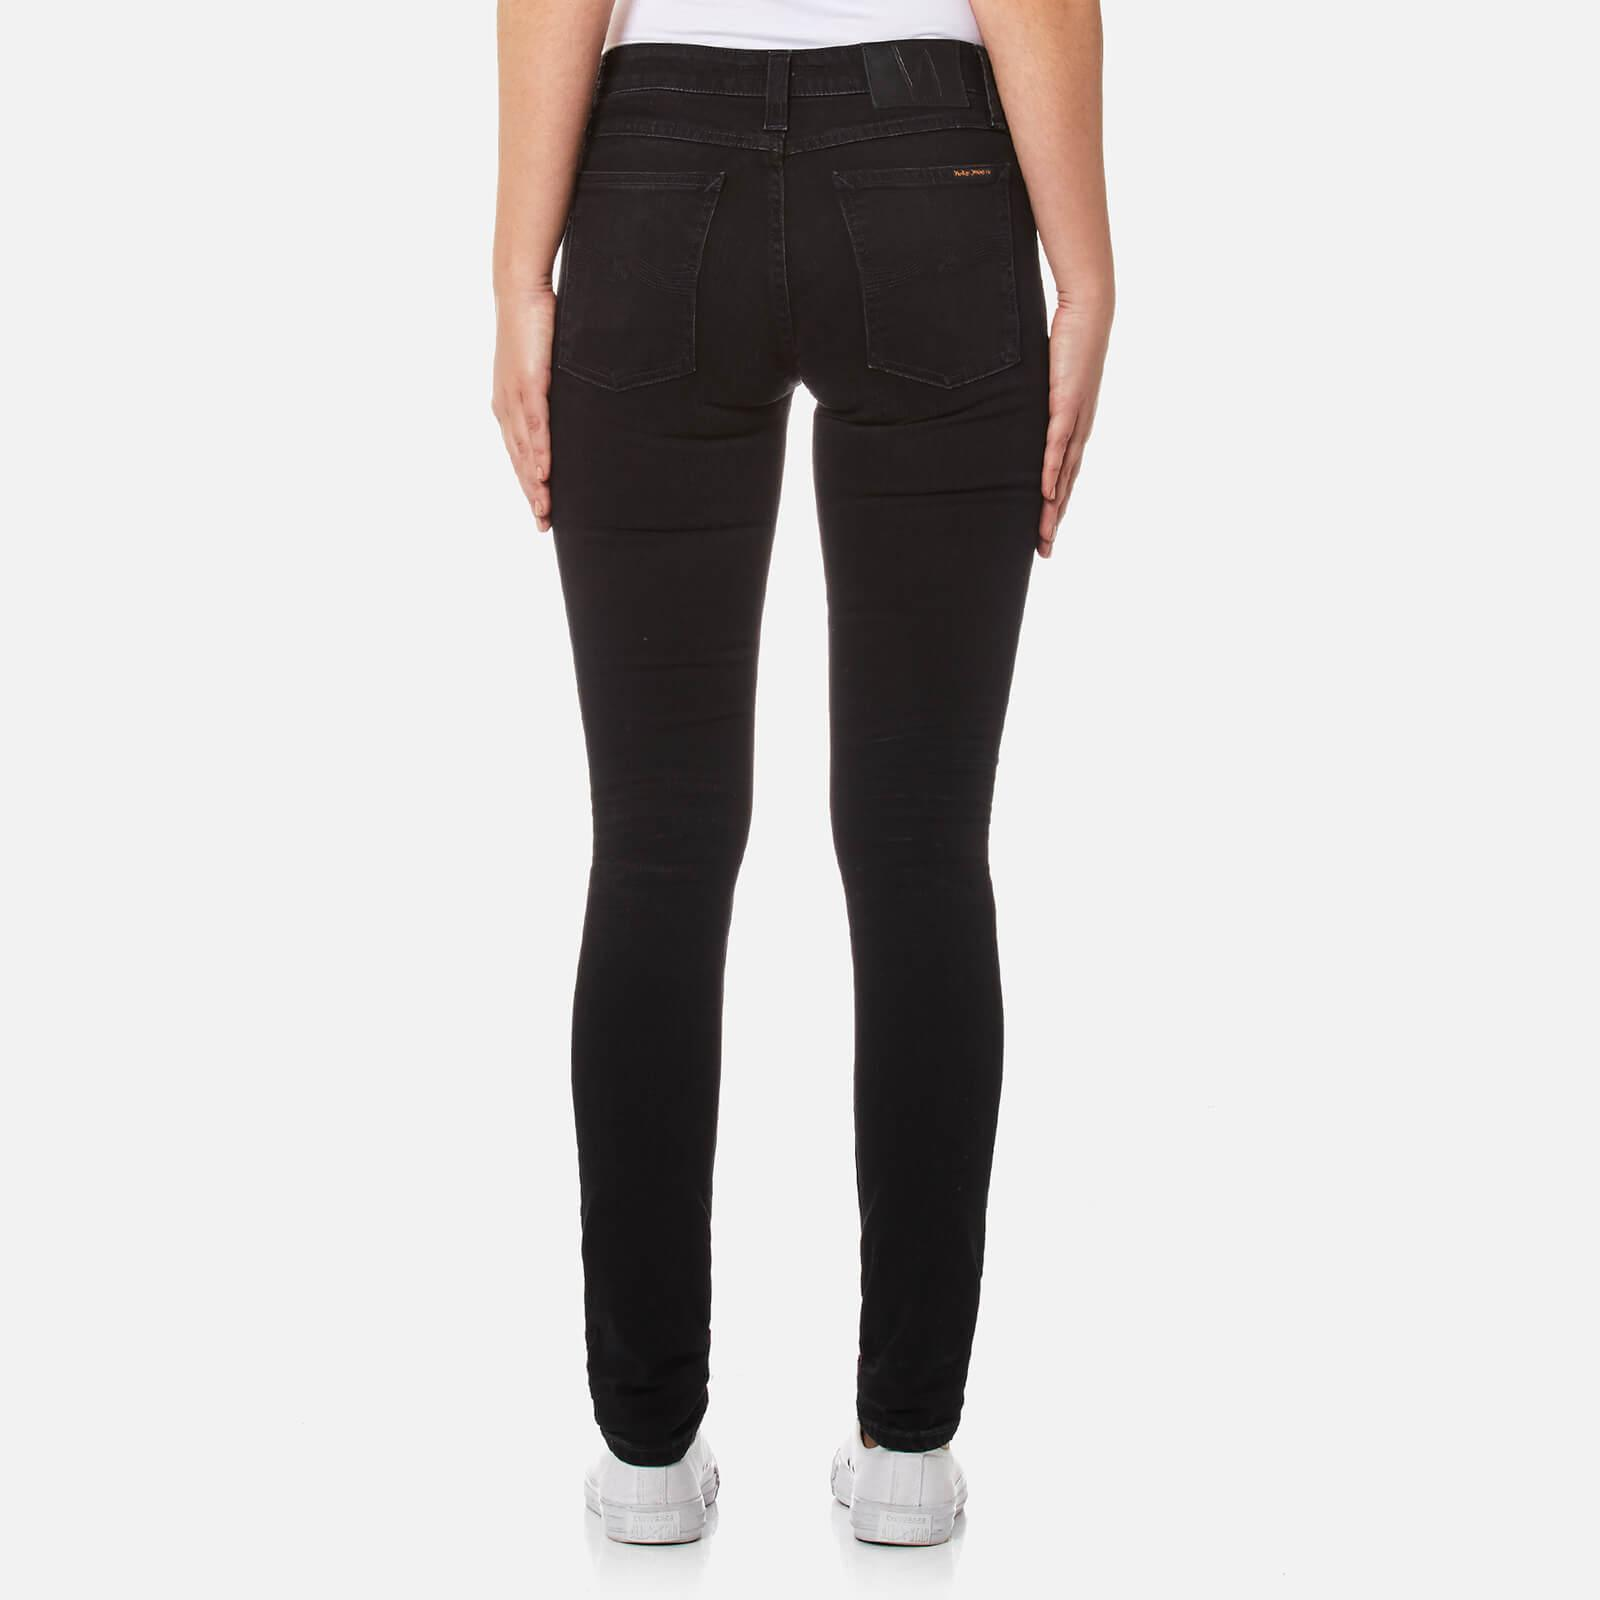 Nudie Jeans Denim Skinny Lin Jeans in Black